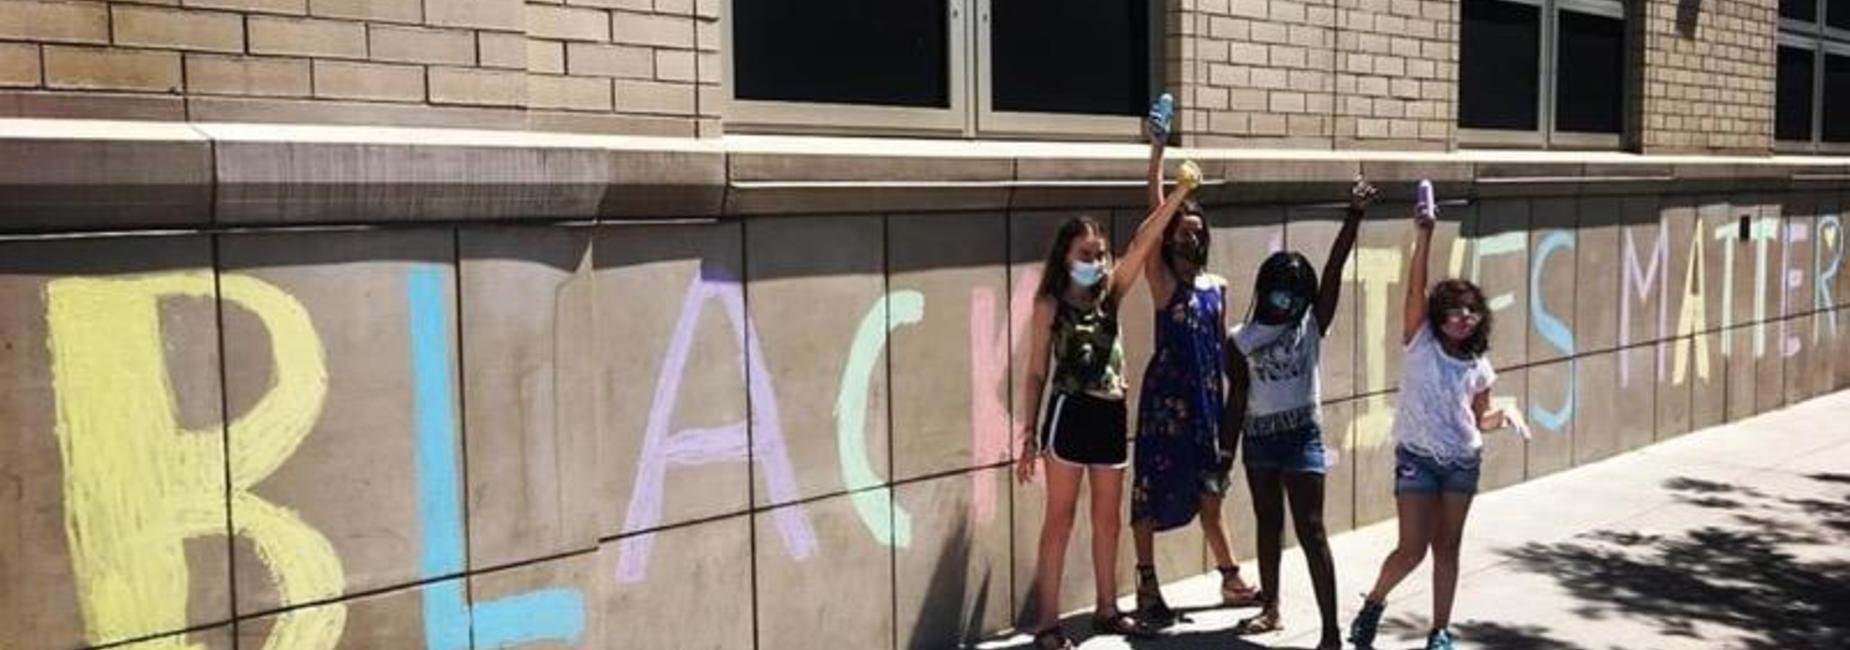 Black Lives Matter Mural in chalk on the school building